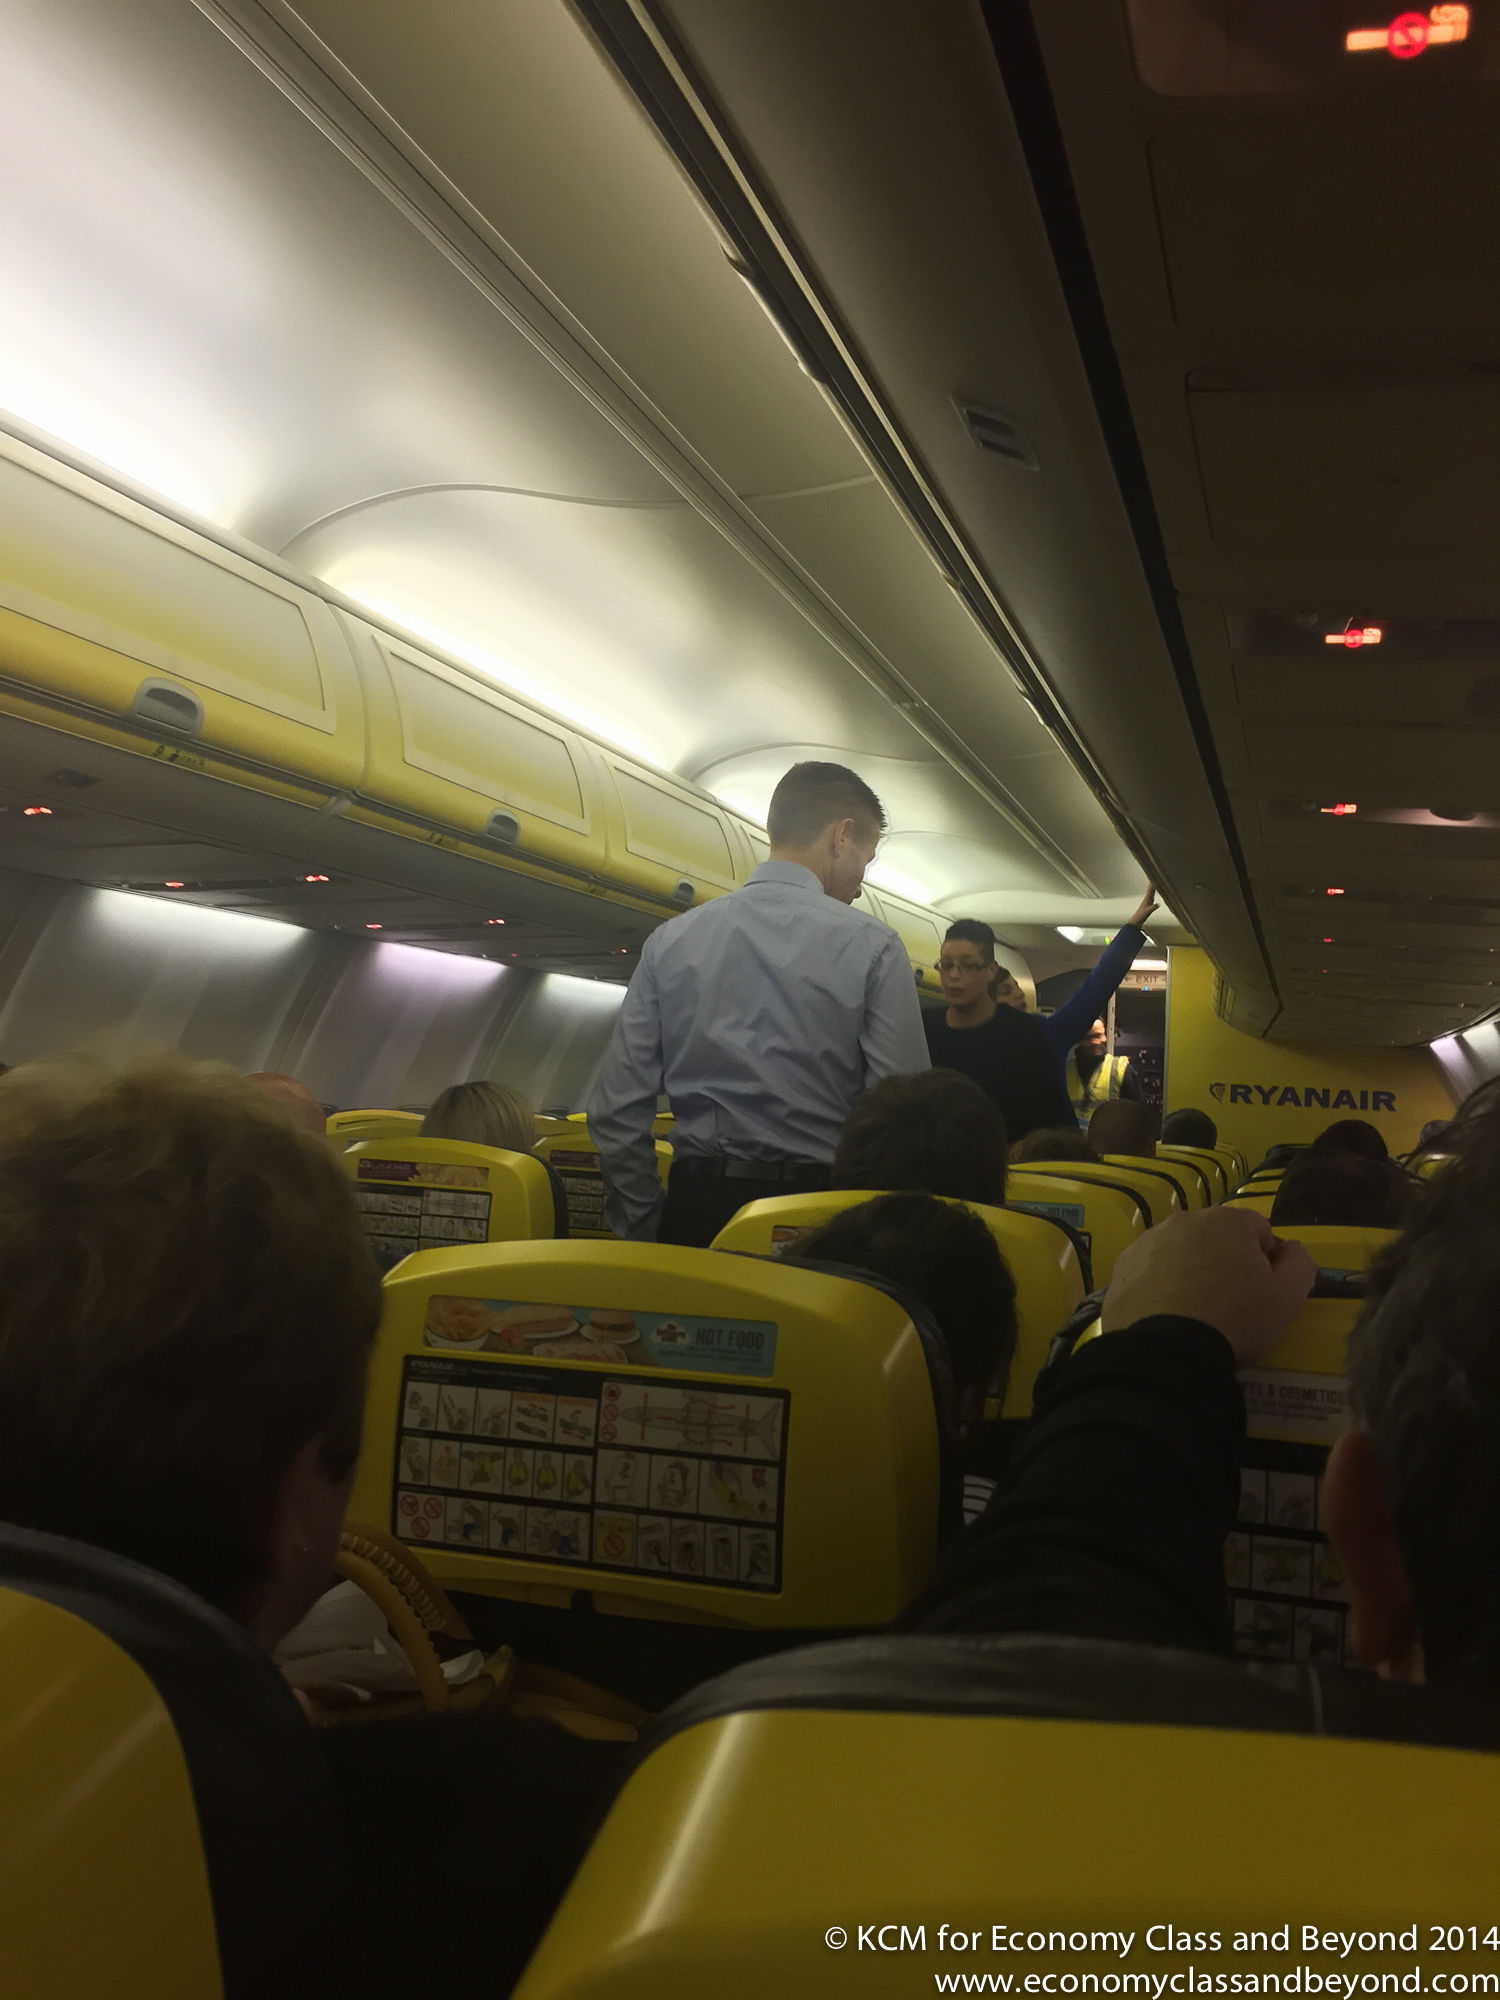 Book It Danno To Birmingham Airport Ryanair Fr693 Birmingham To Dublin Economy